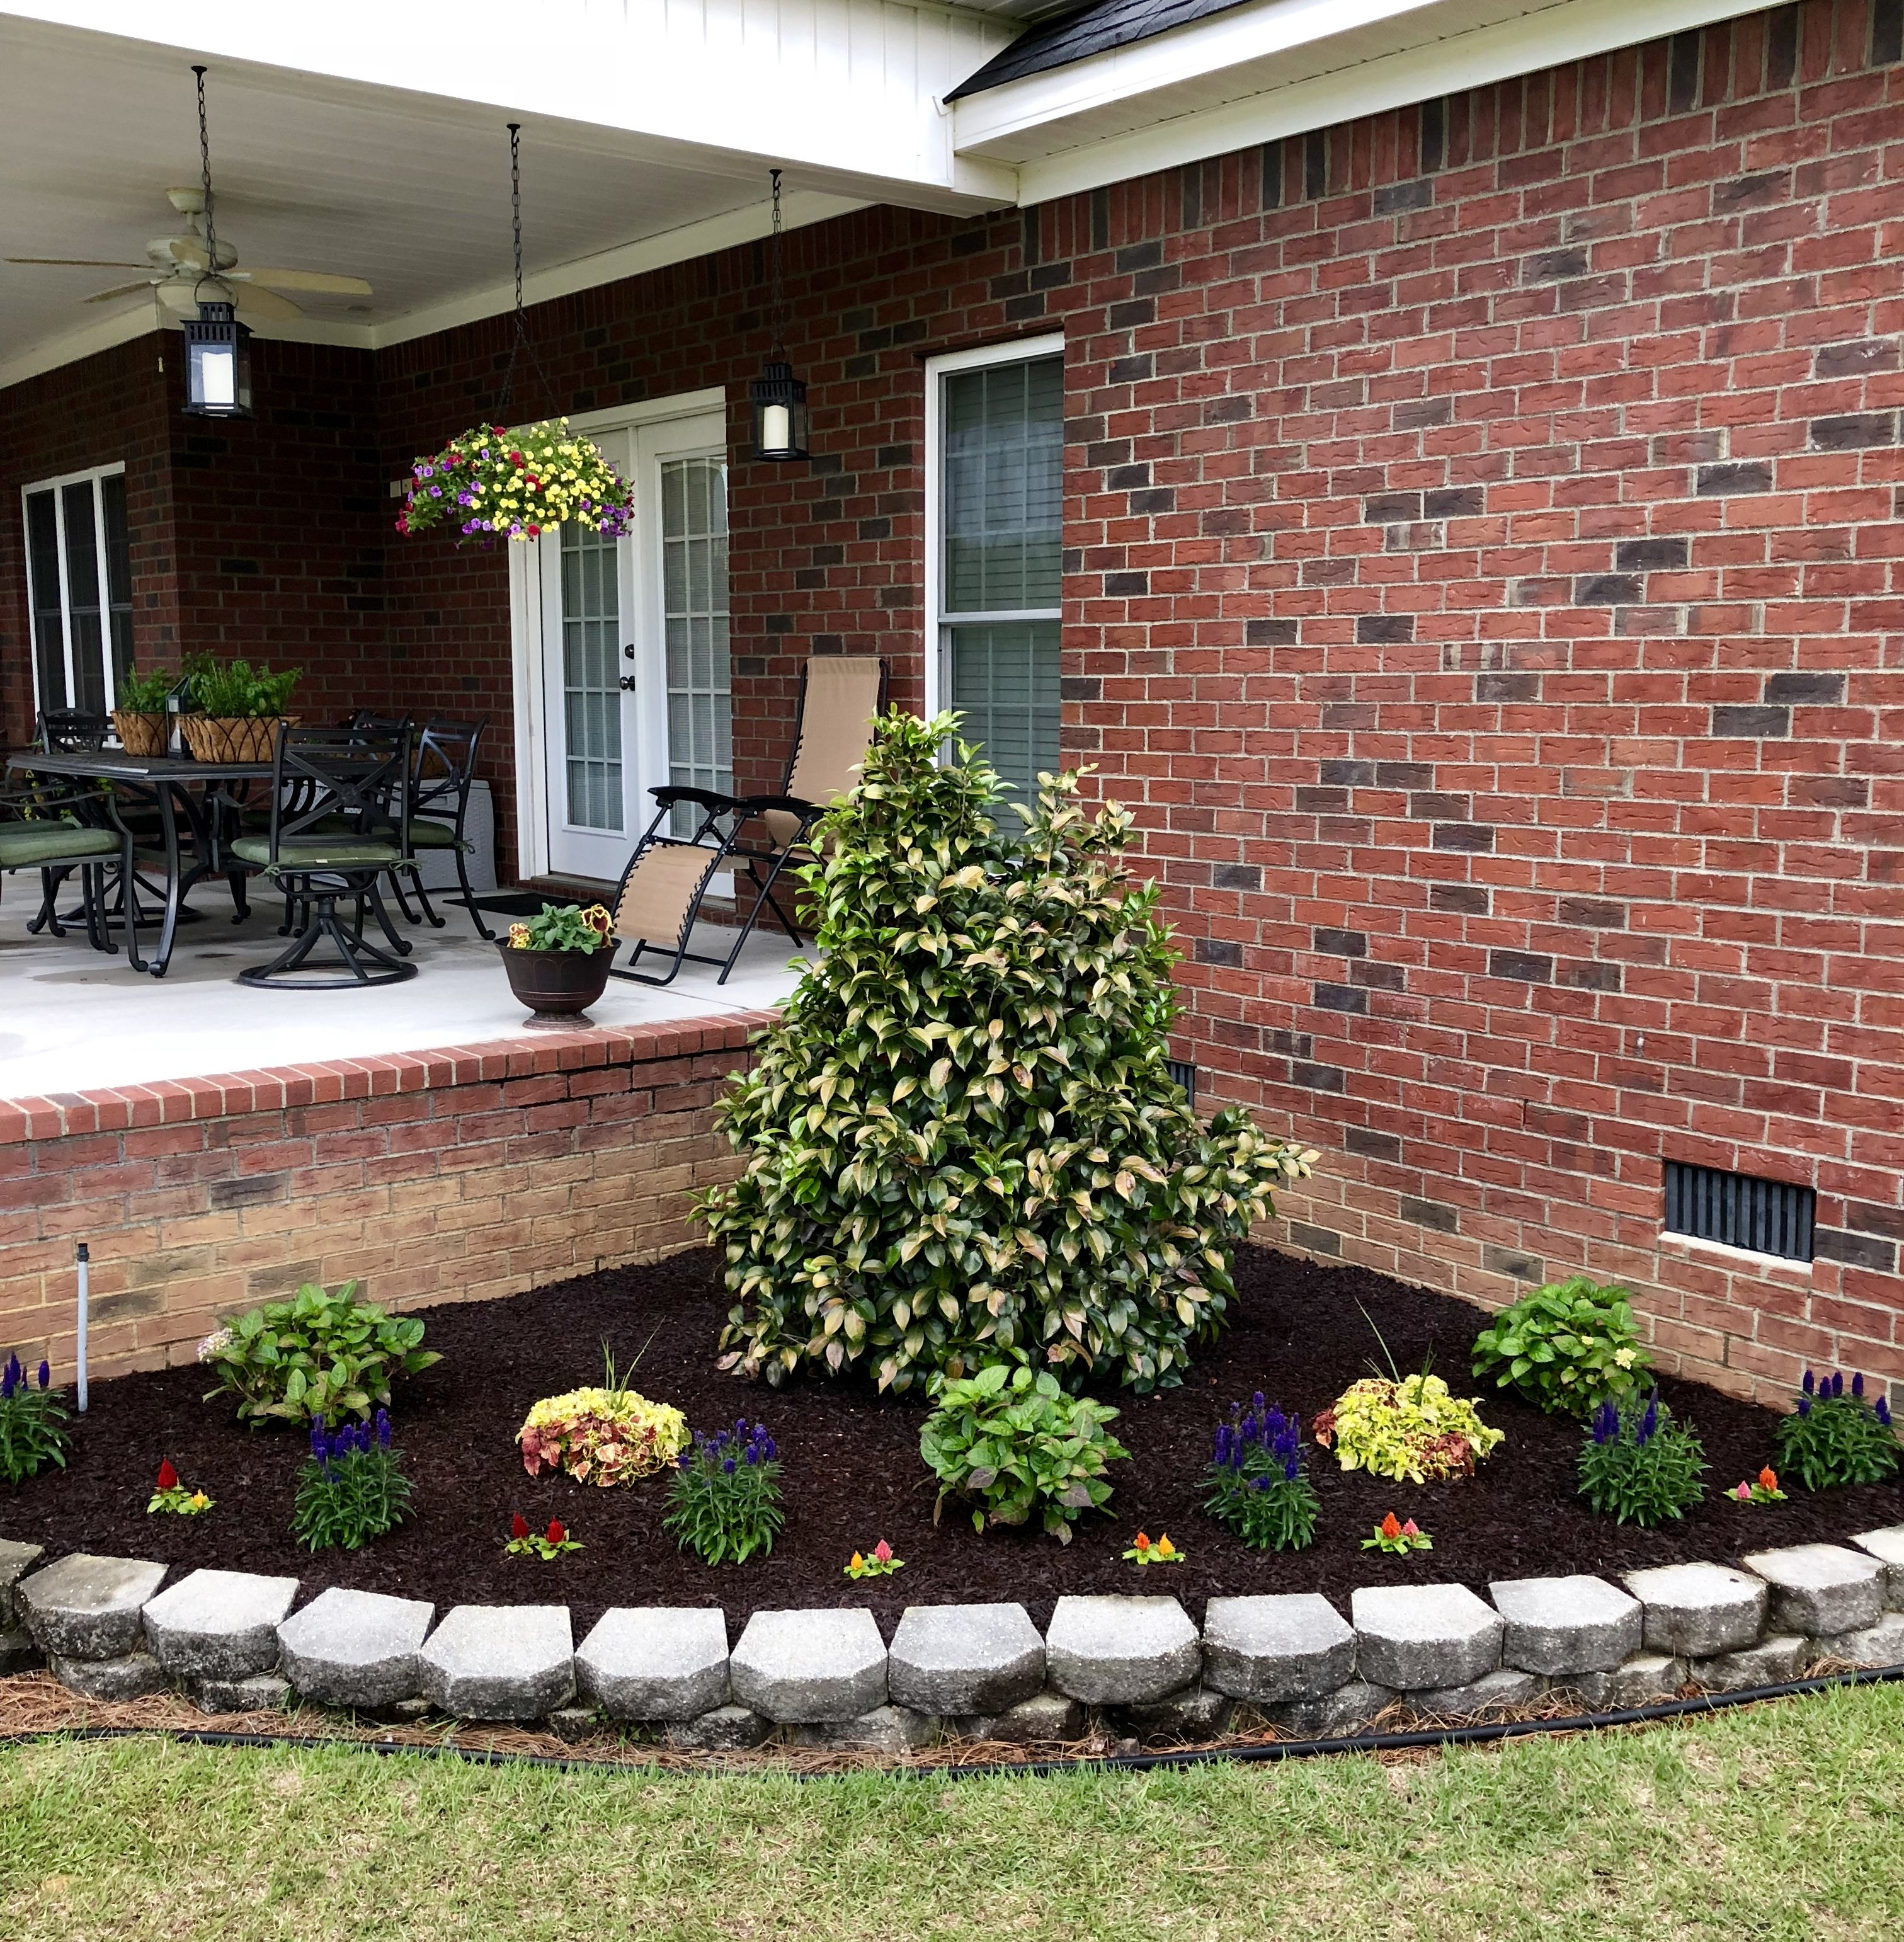 The most recent project I did on my back porch. Redesigned